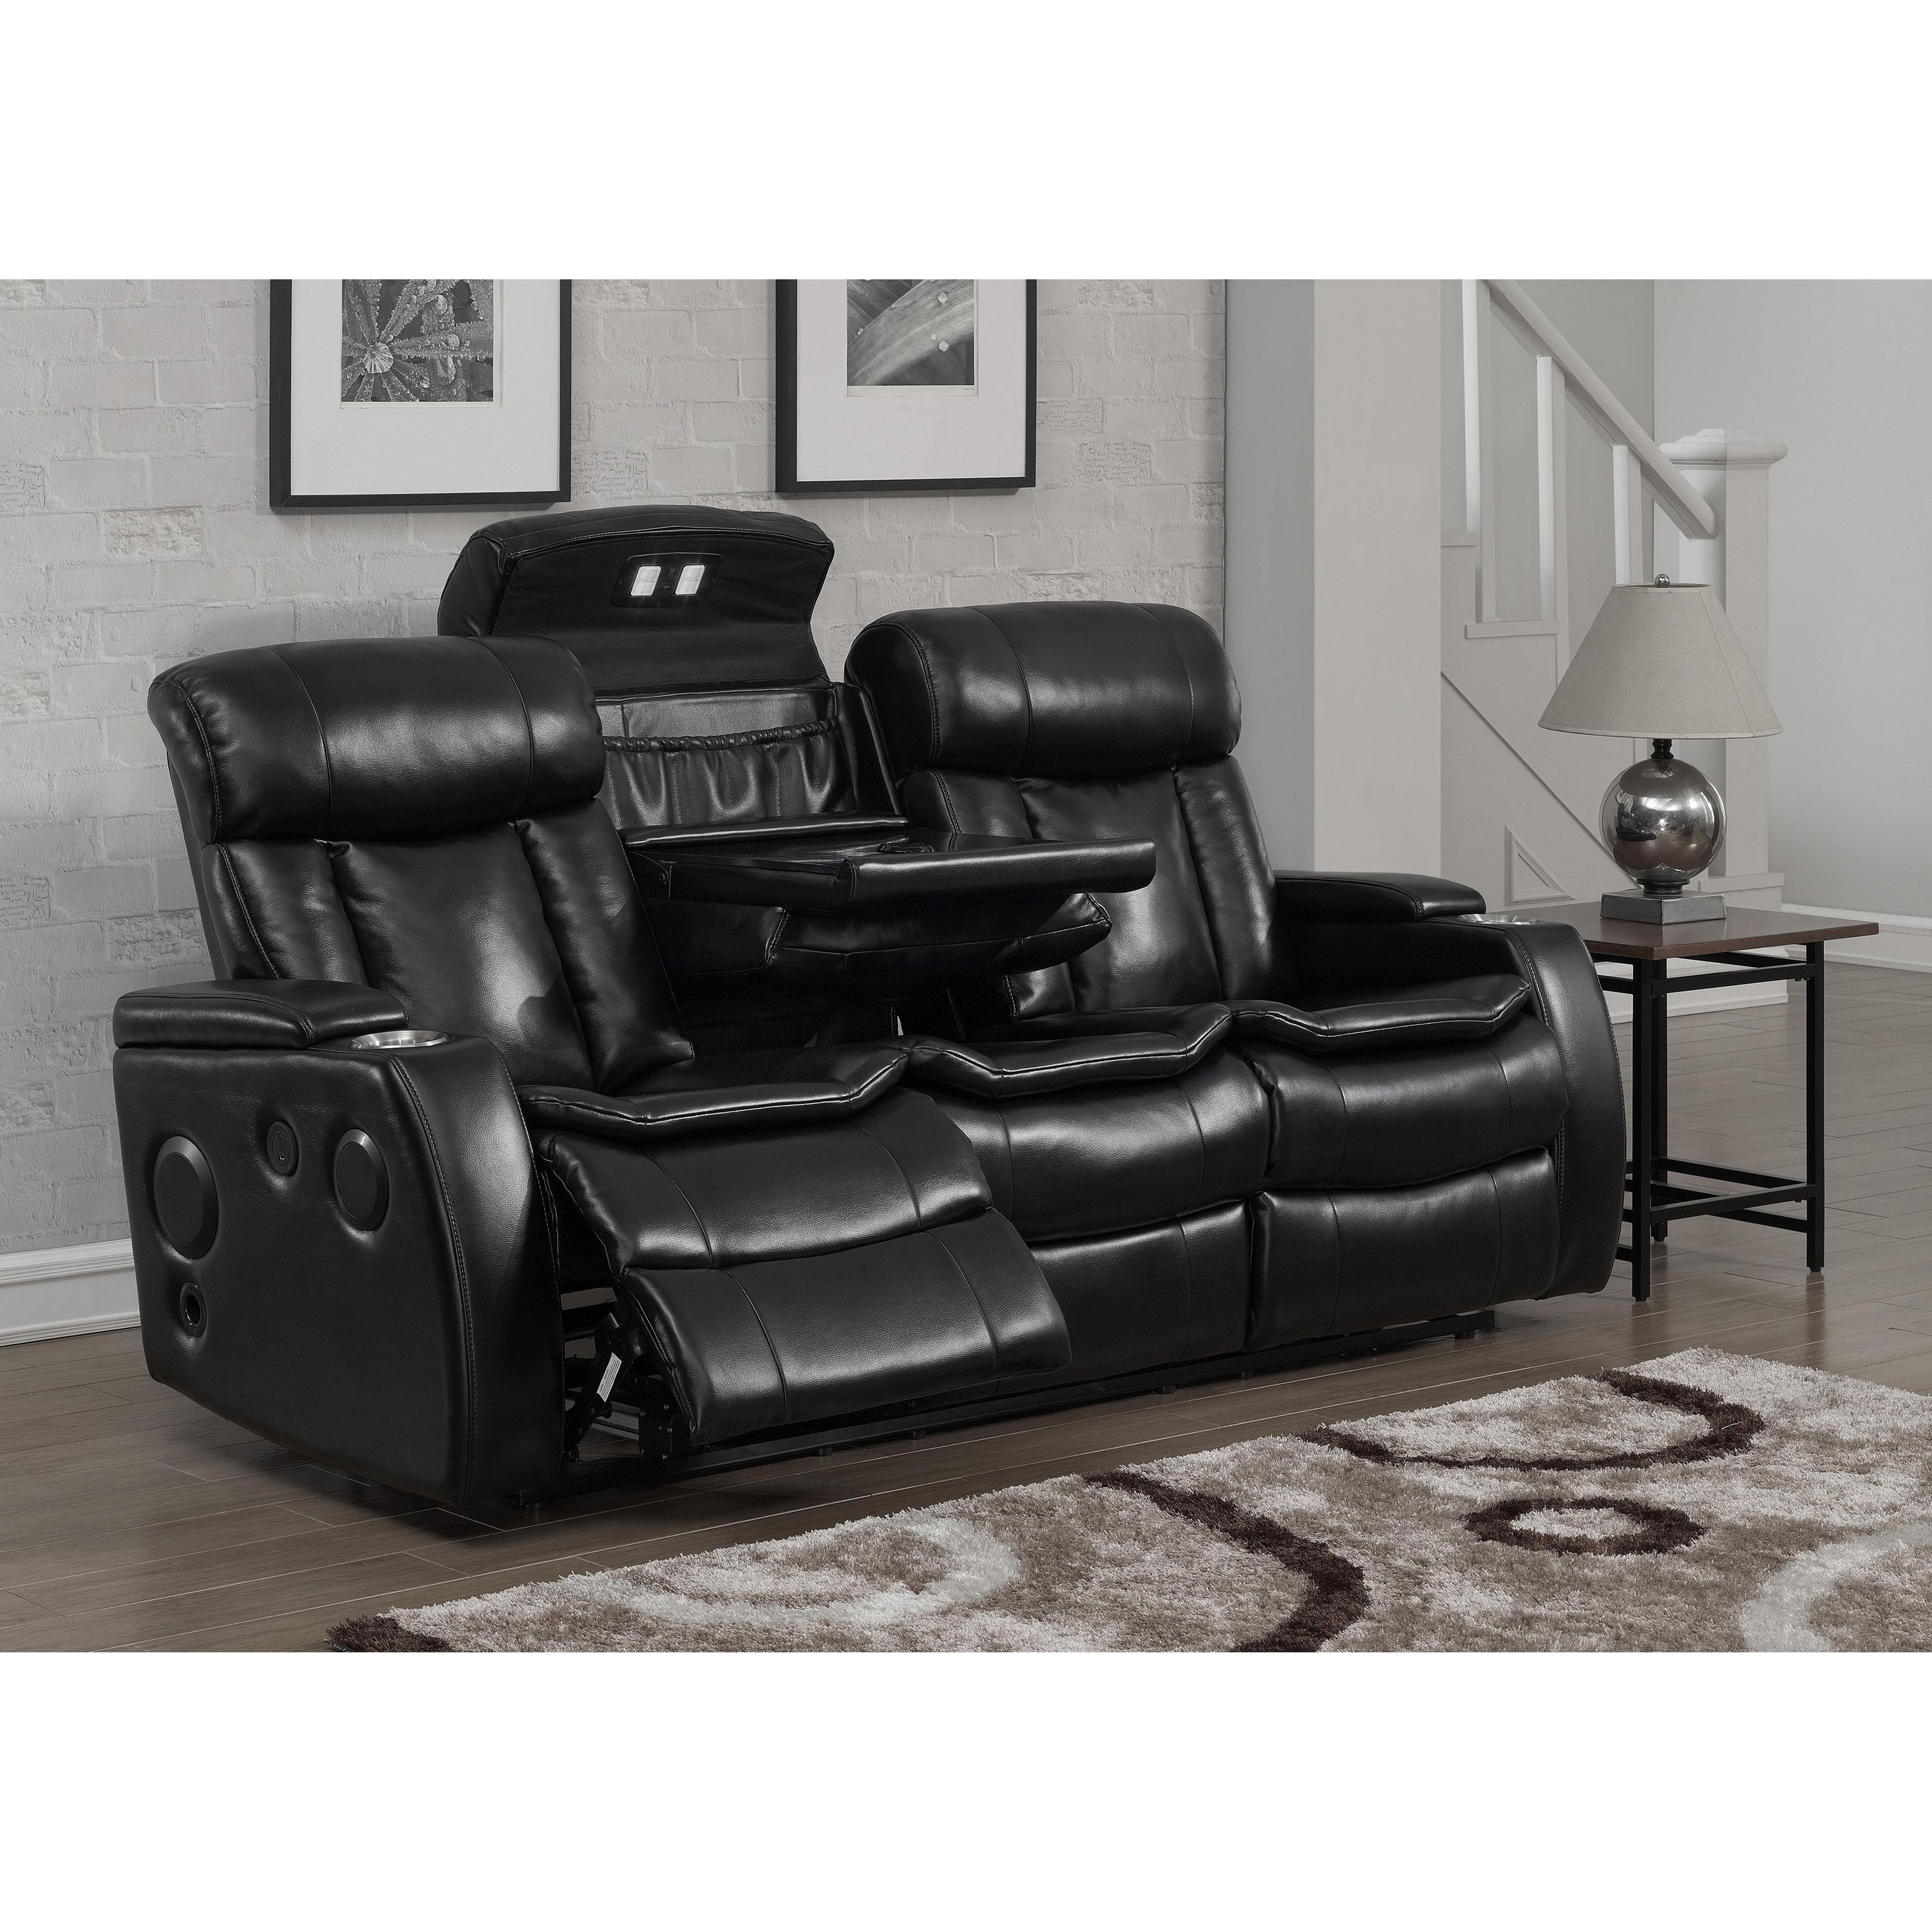 power sofa recliner mechanism broyhill sleeper mattress smart tech bluetooth reclining black faux